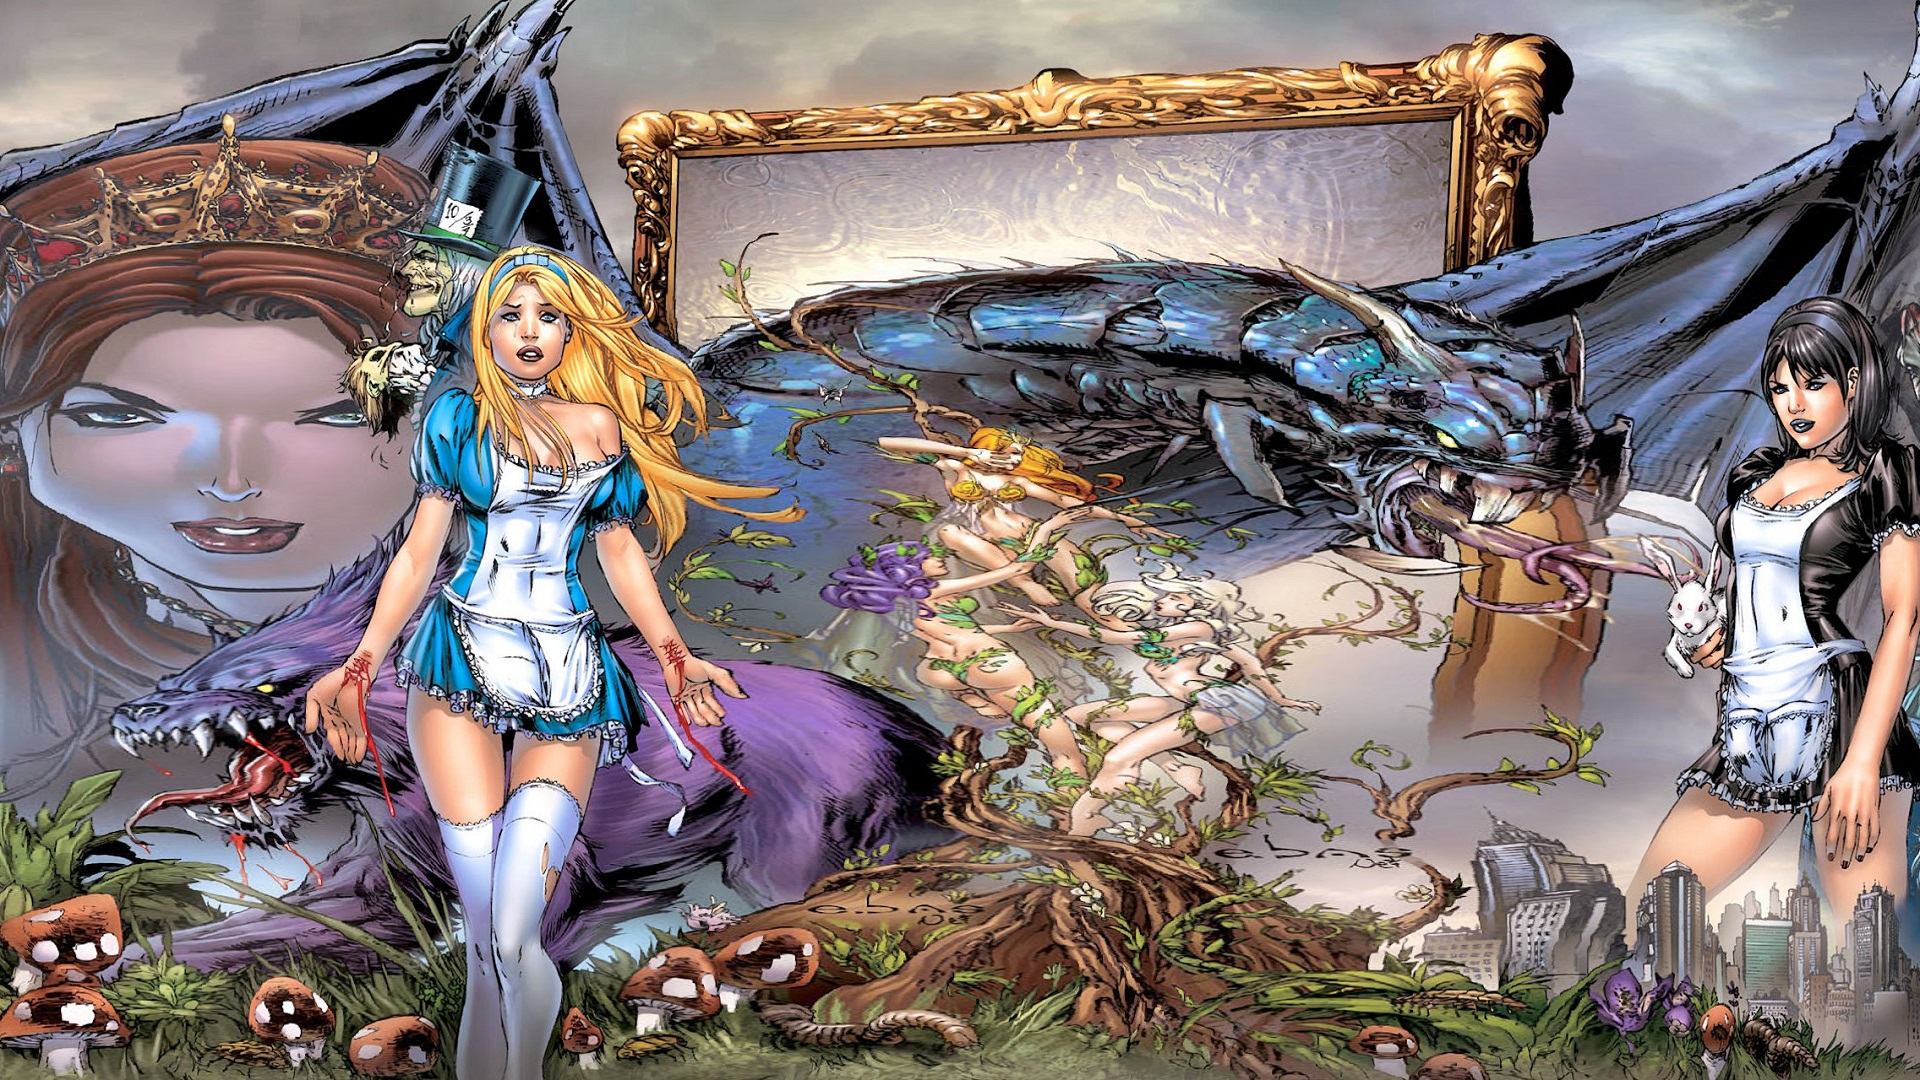 female grimm fairy tales wallpaper - photo #37